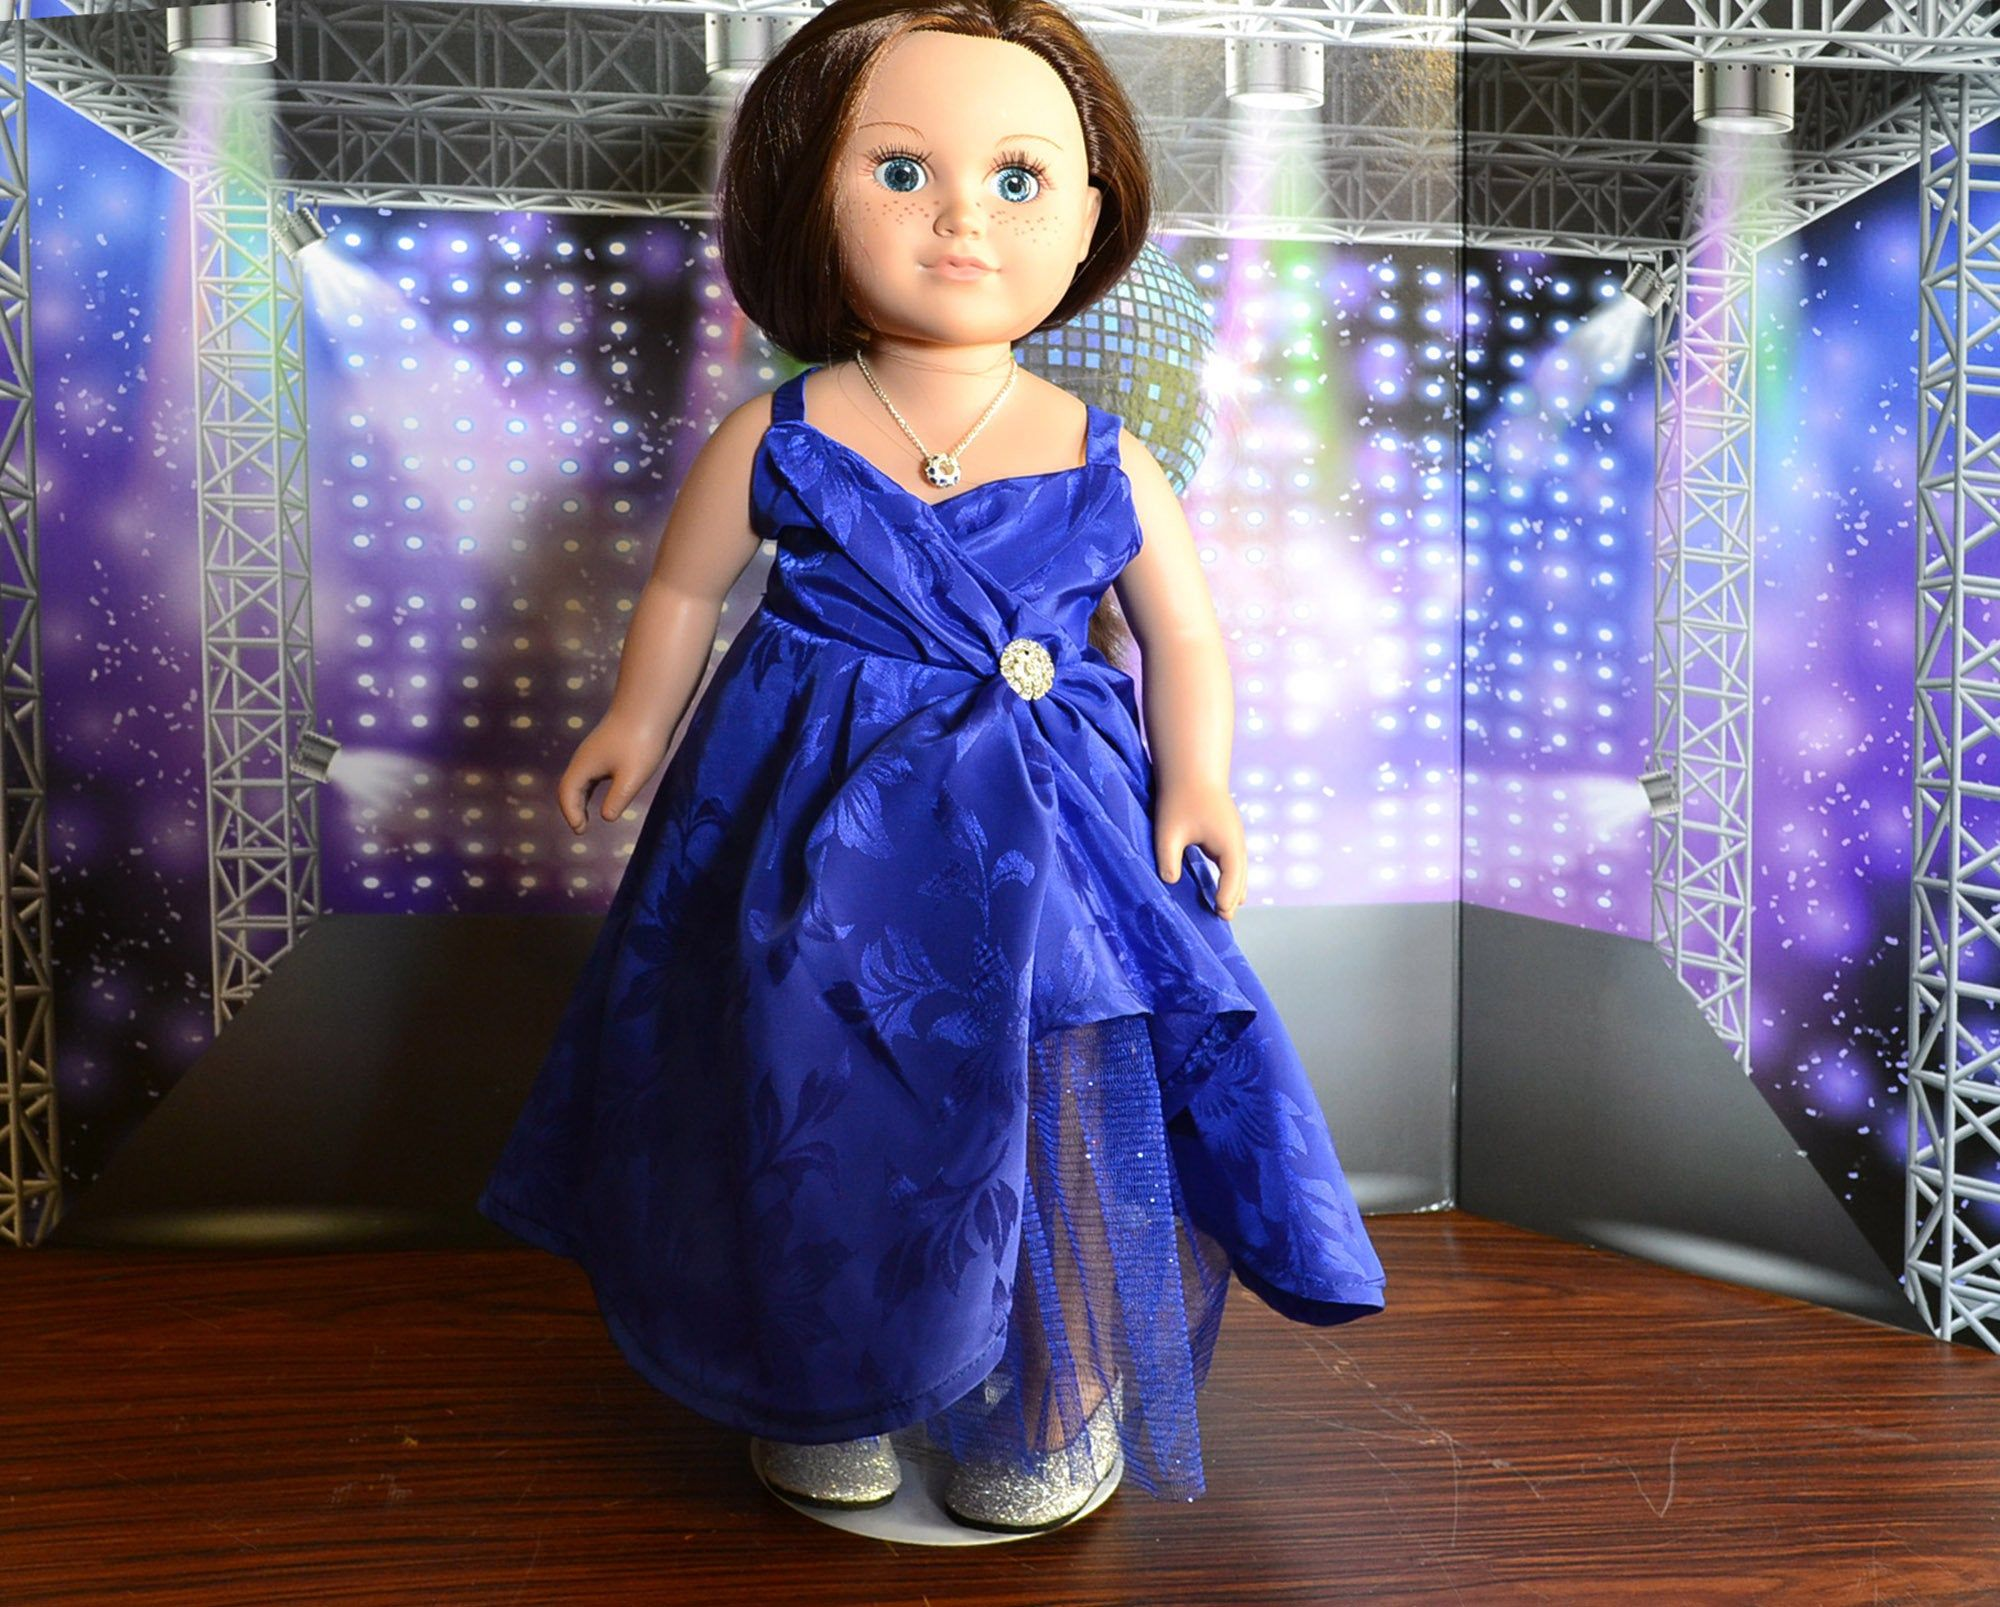 Royal Blue Princess Wonder Woman type dress 18 inch doll clothes, Prom dress fits American